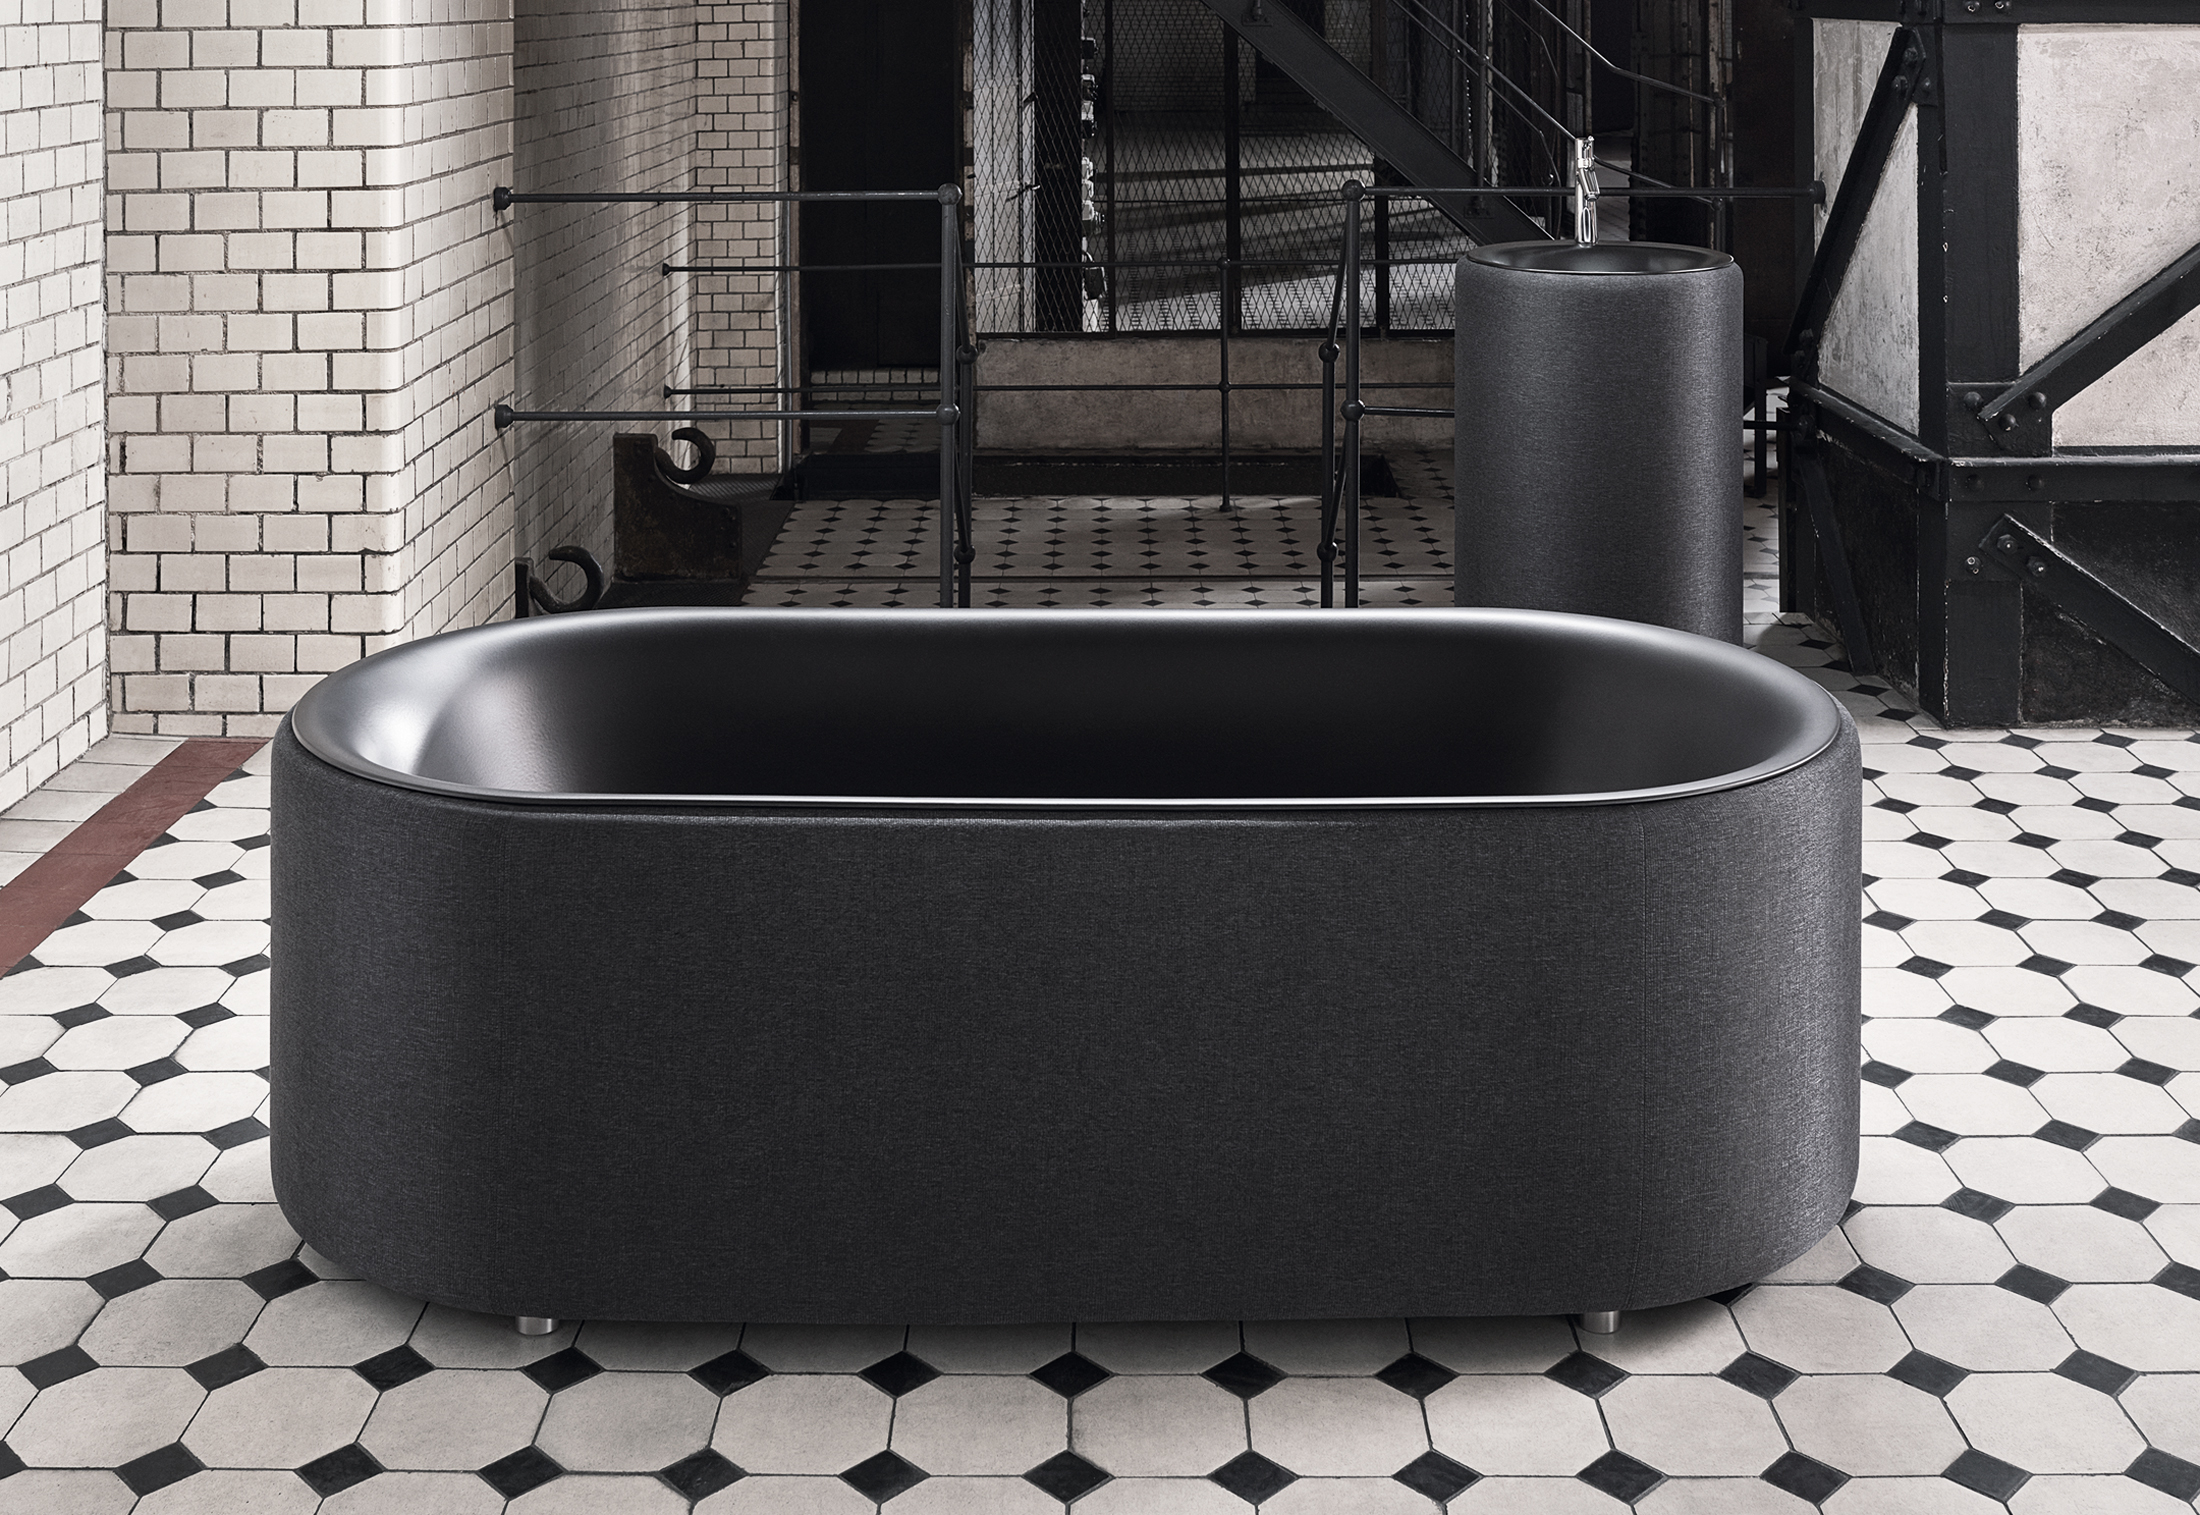 bettelux oval couture free standing bath by bette stylepark. Black Bedroom Furniture Sets. Home Design Ideas